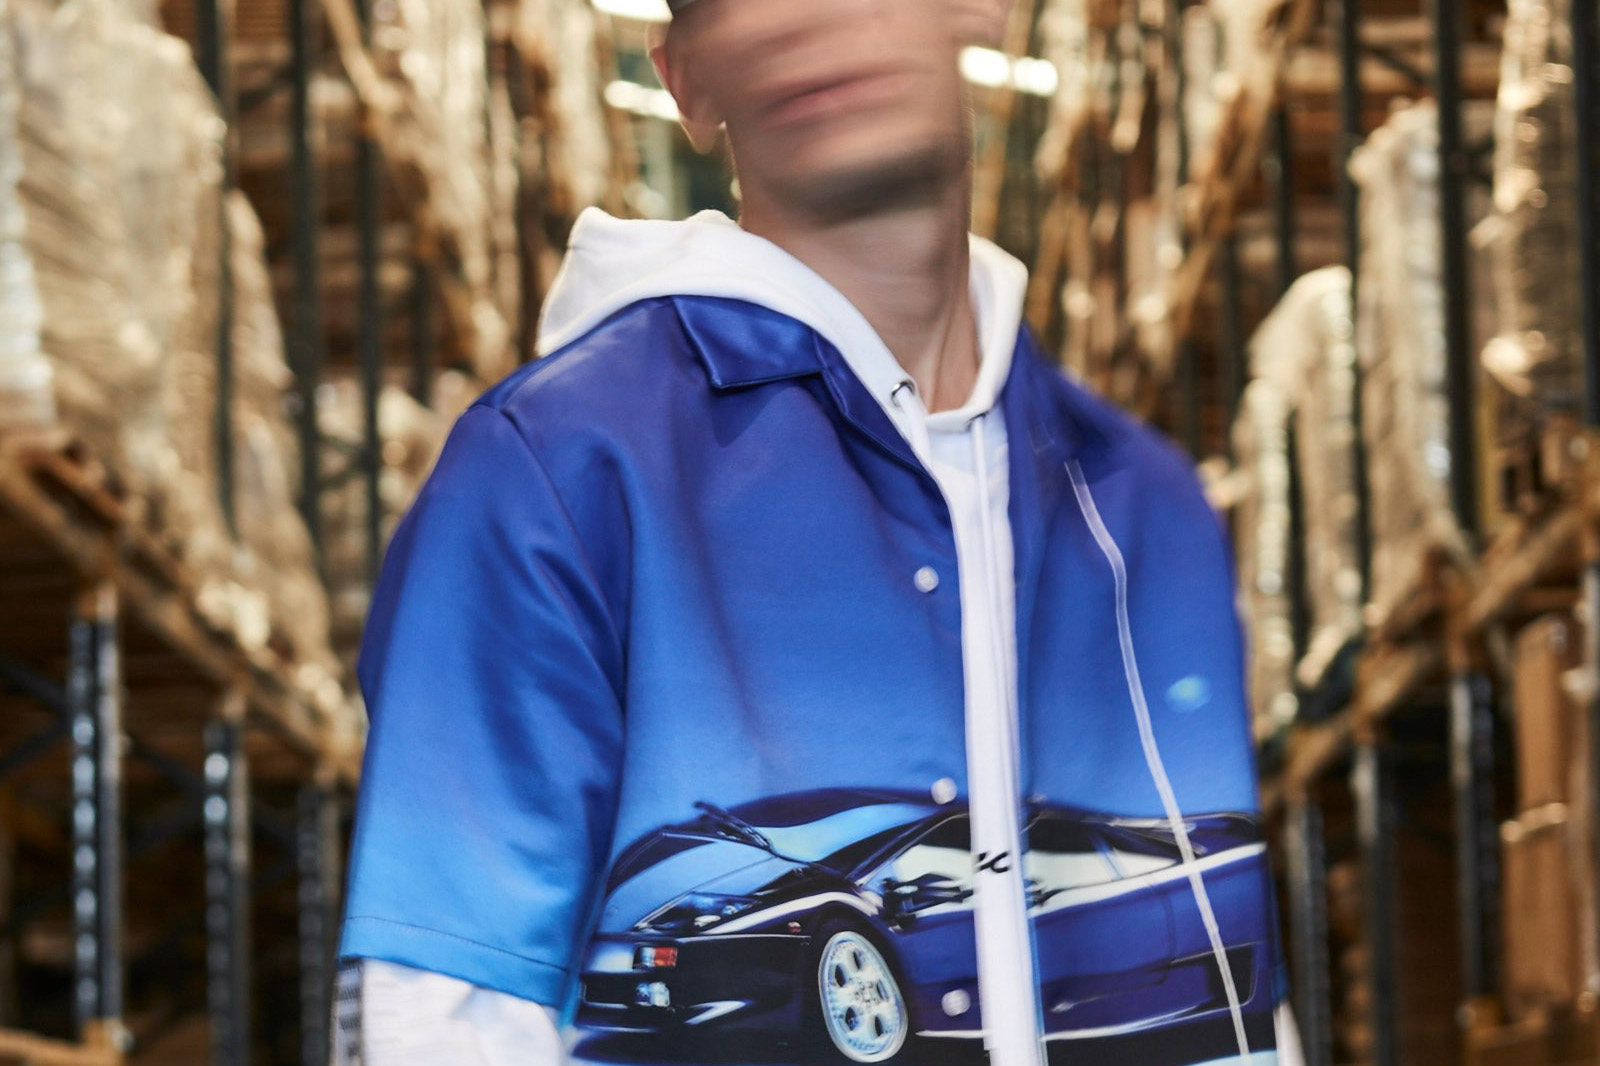 Model wearing Blood Brother jacket and face blurred